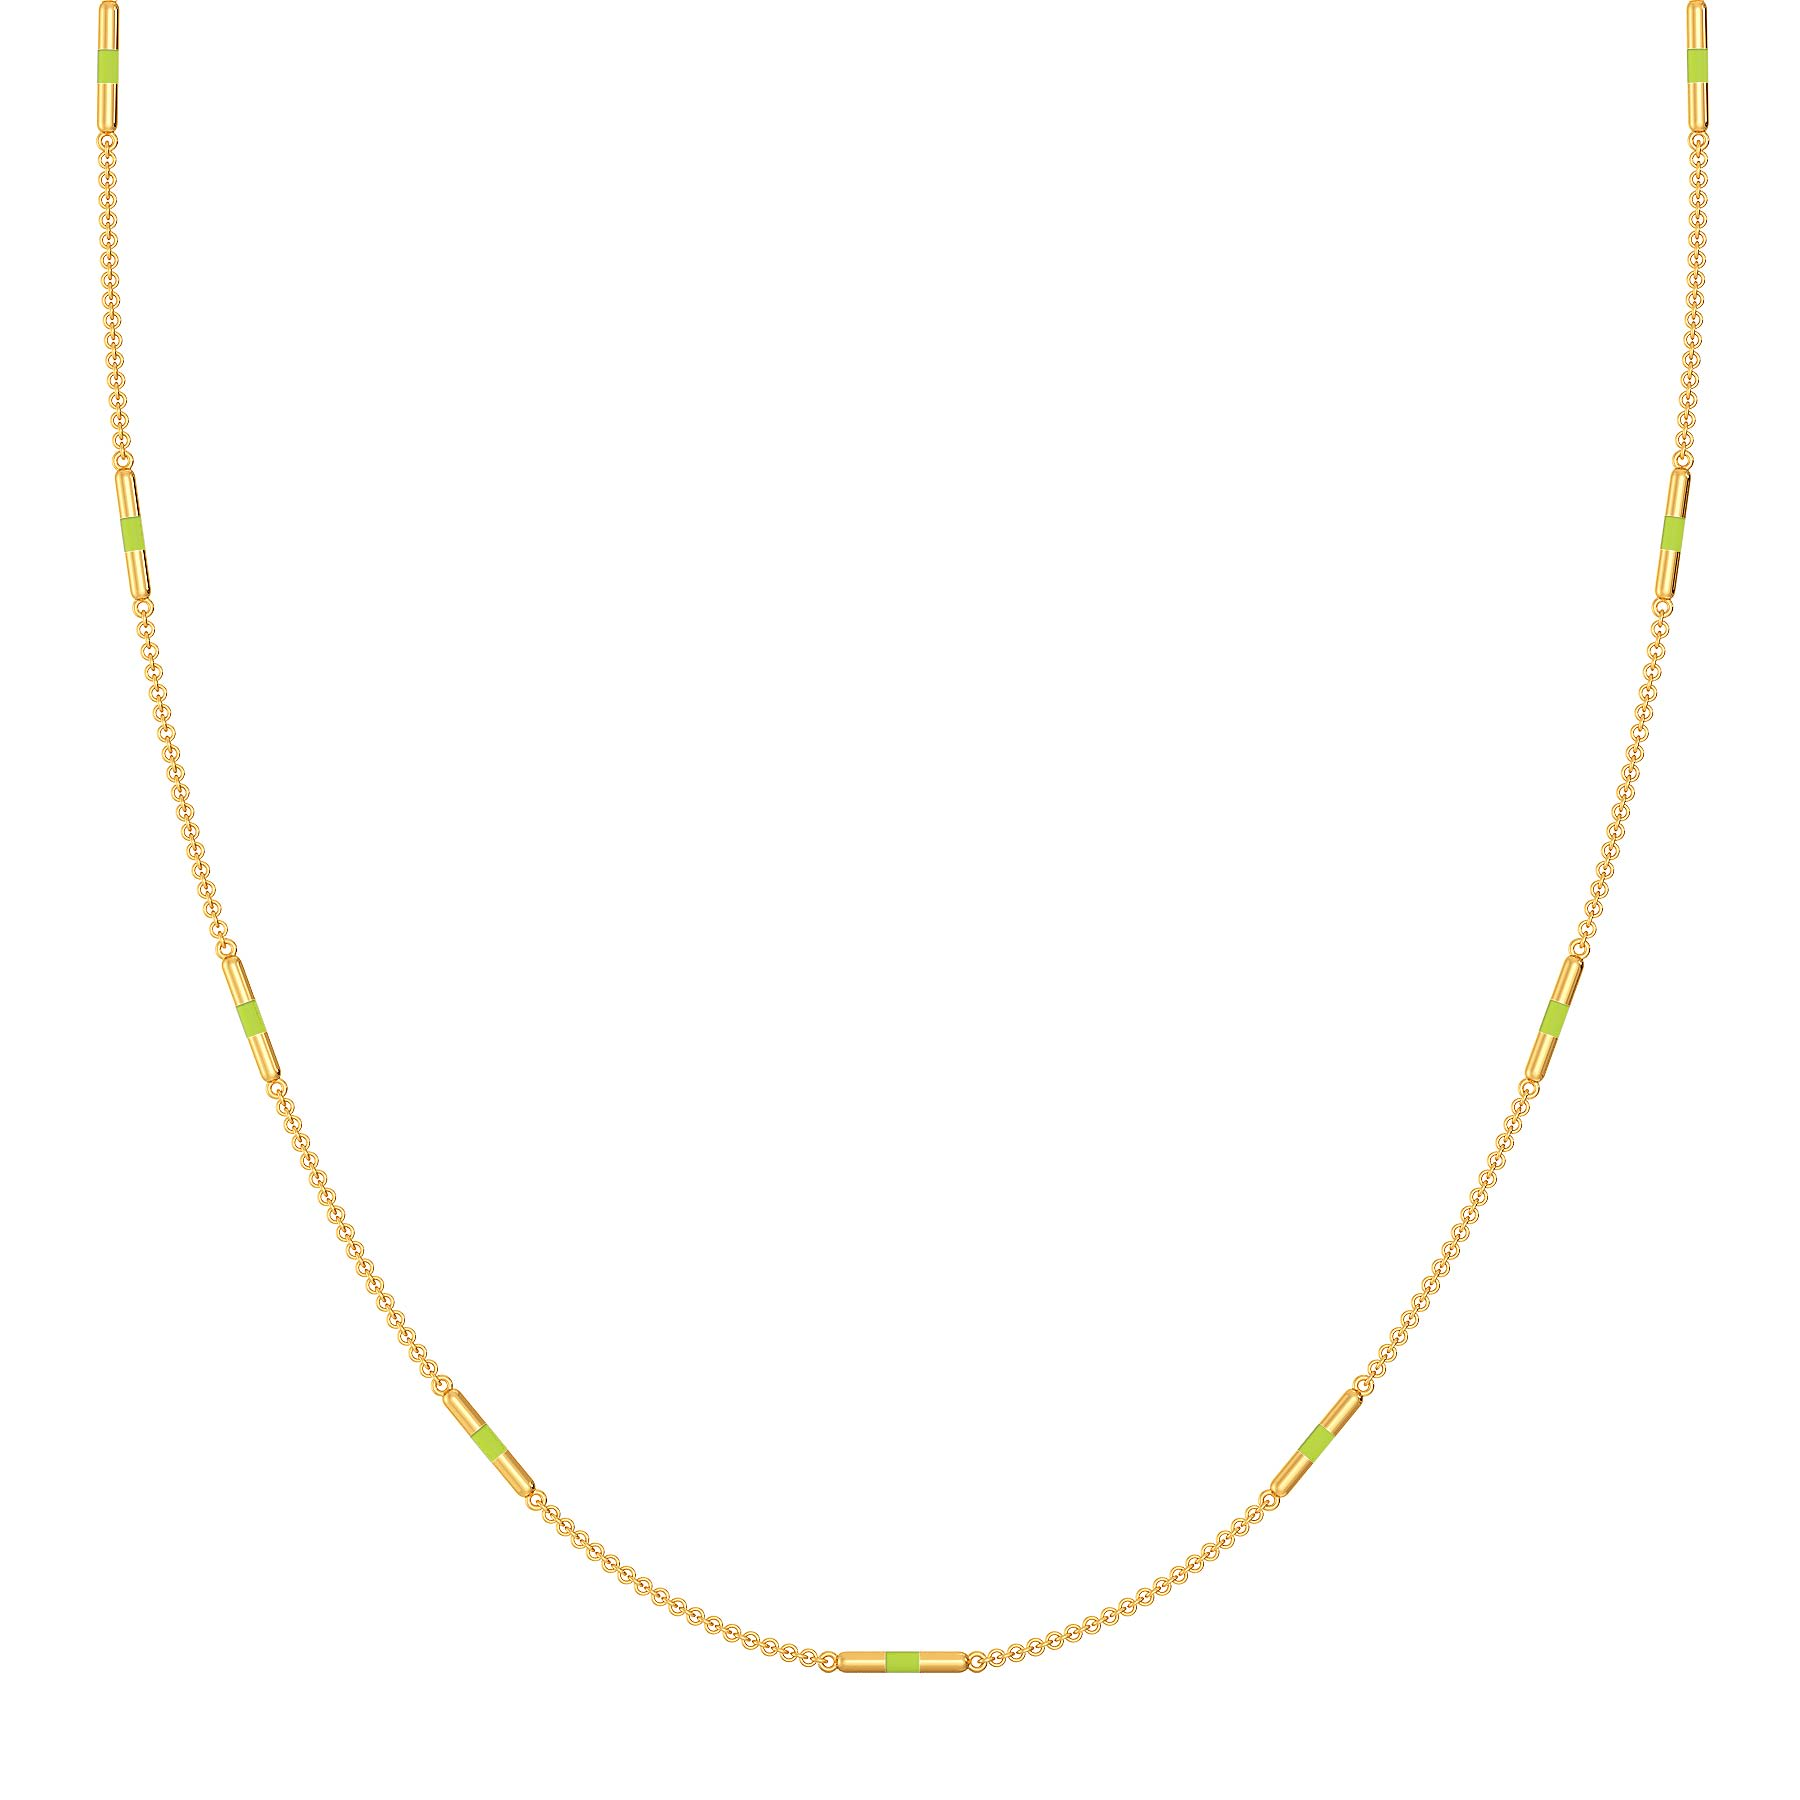 Colour Me Neon Gold Necklaces